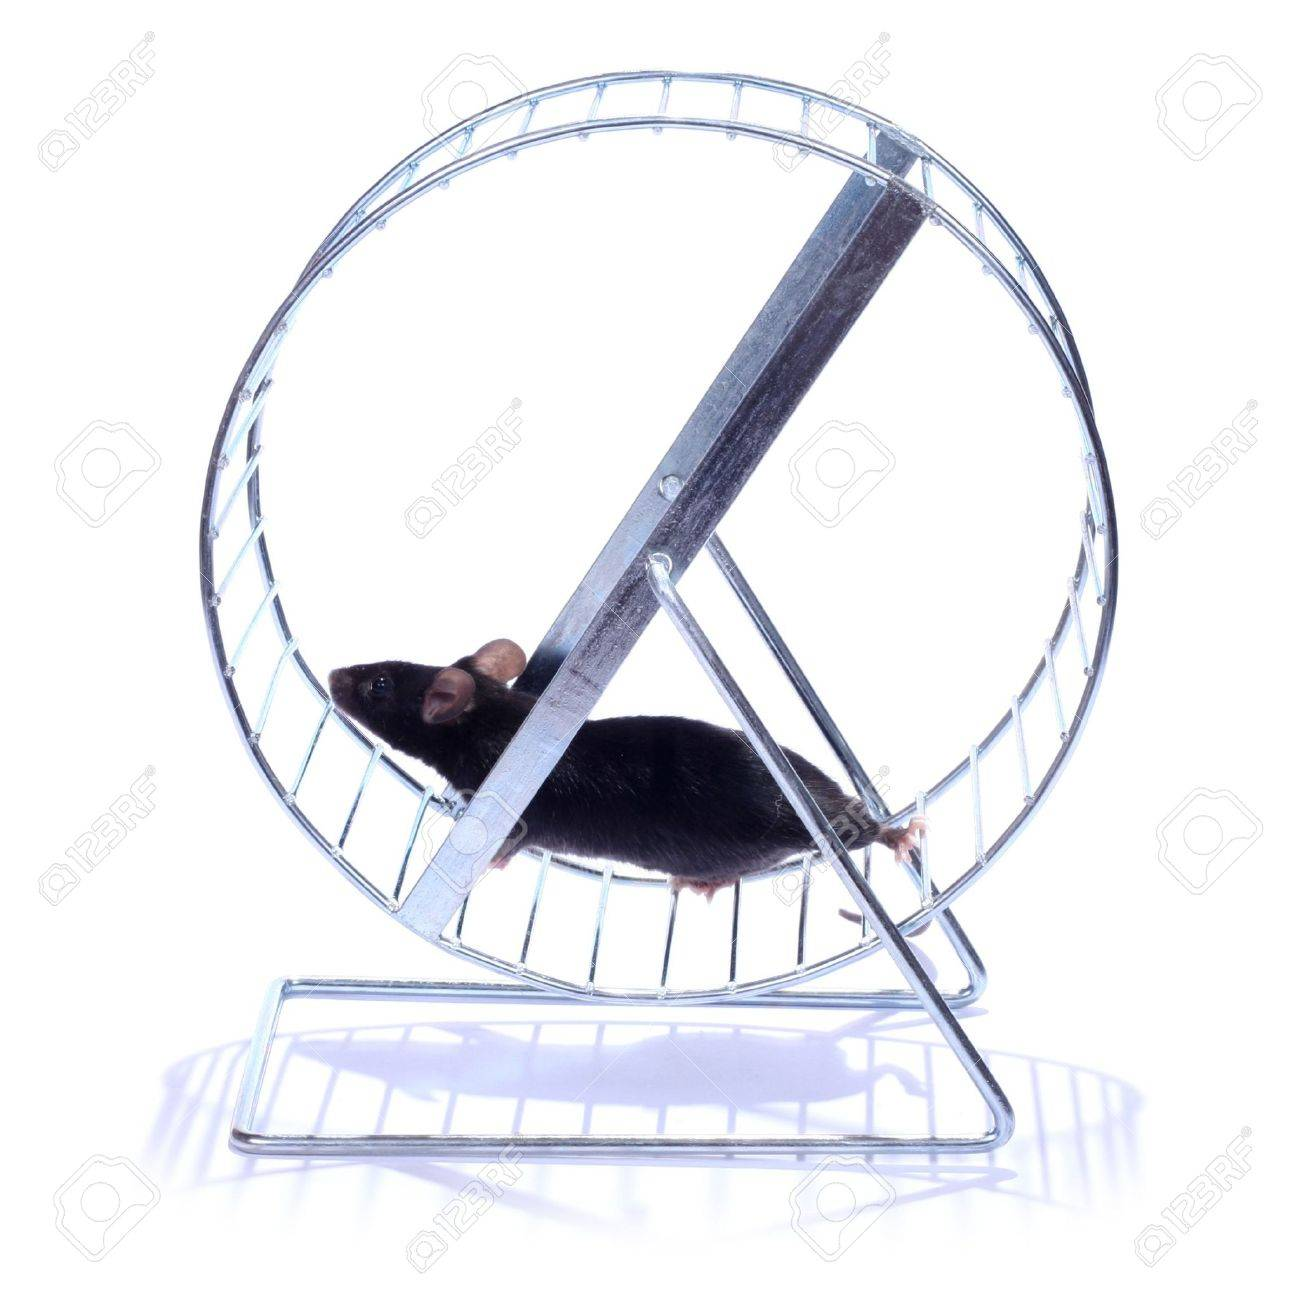 little black mouse running on an exercise wheel on white background Stock Photo - 6241540